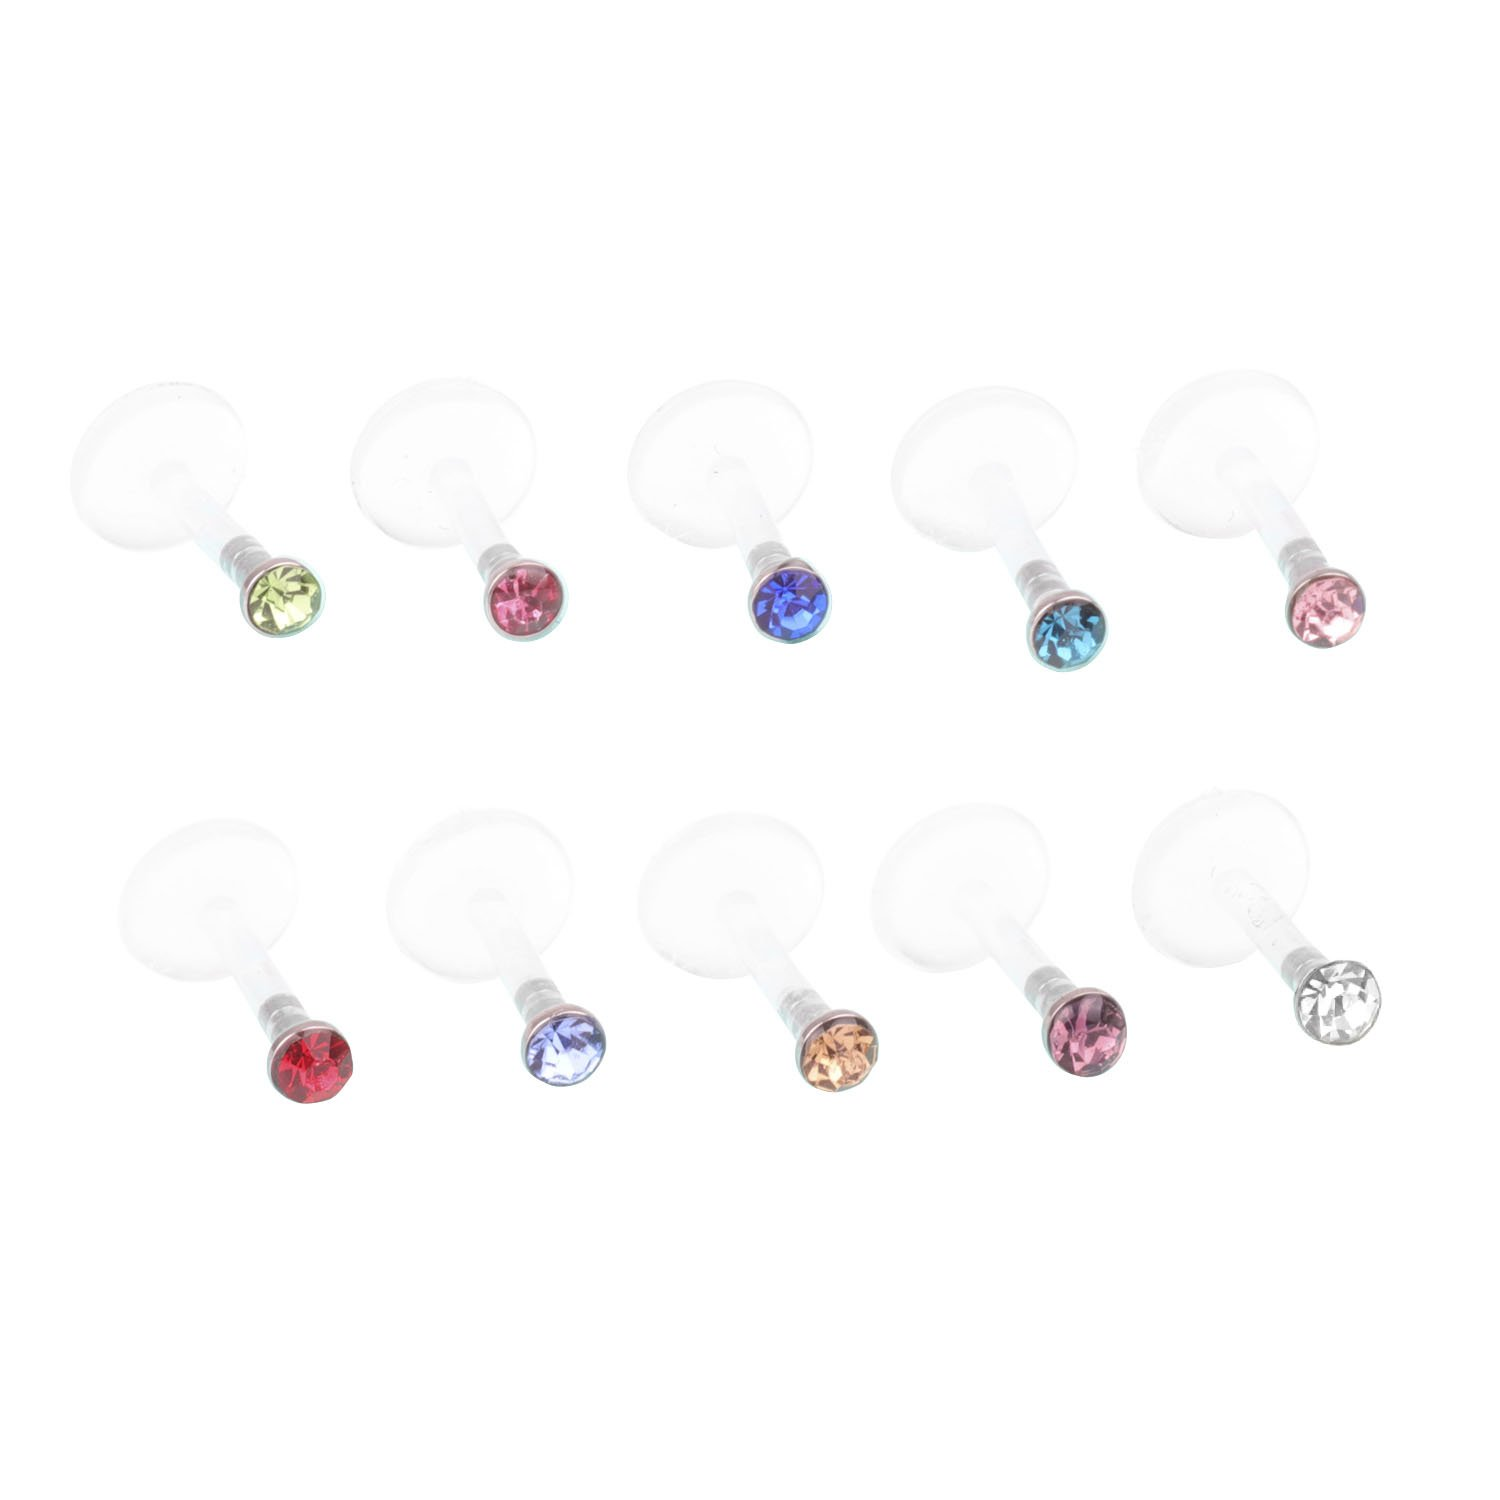 Fashion Body FB 16G 6mm Length Clear UV Flexible Acrylic Labret Lip Ring Tragus Helix Cartilage Earring Stud Barbell Piercing Jewelry……